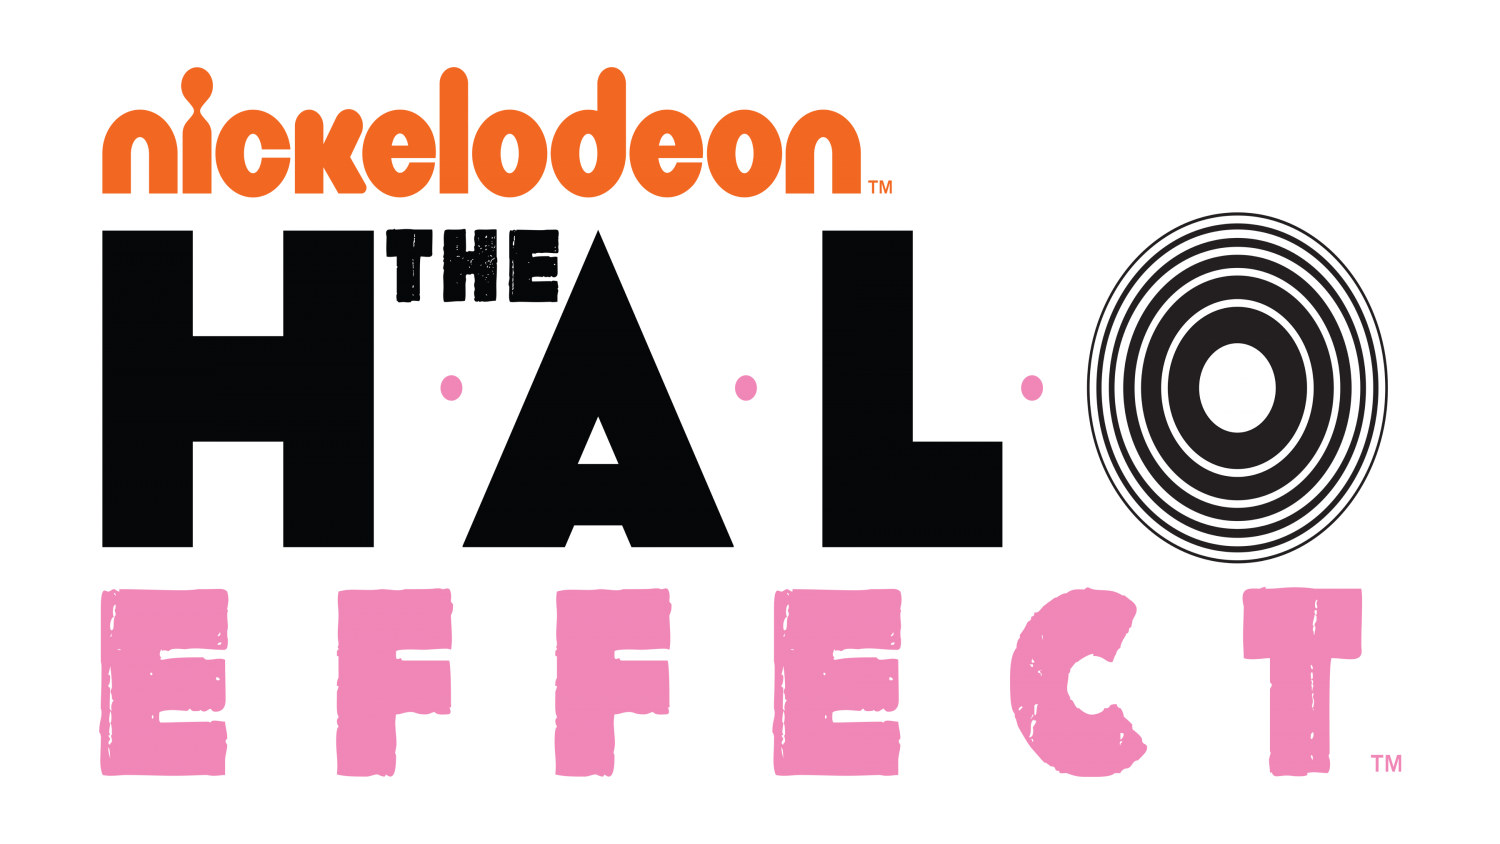 Nickelodeon: The HALO Effect